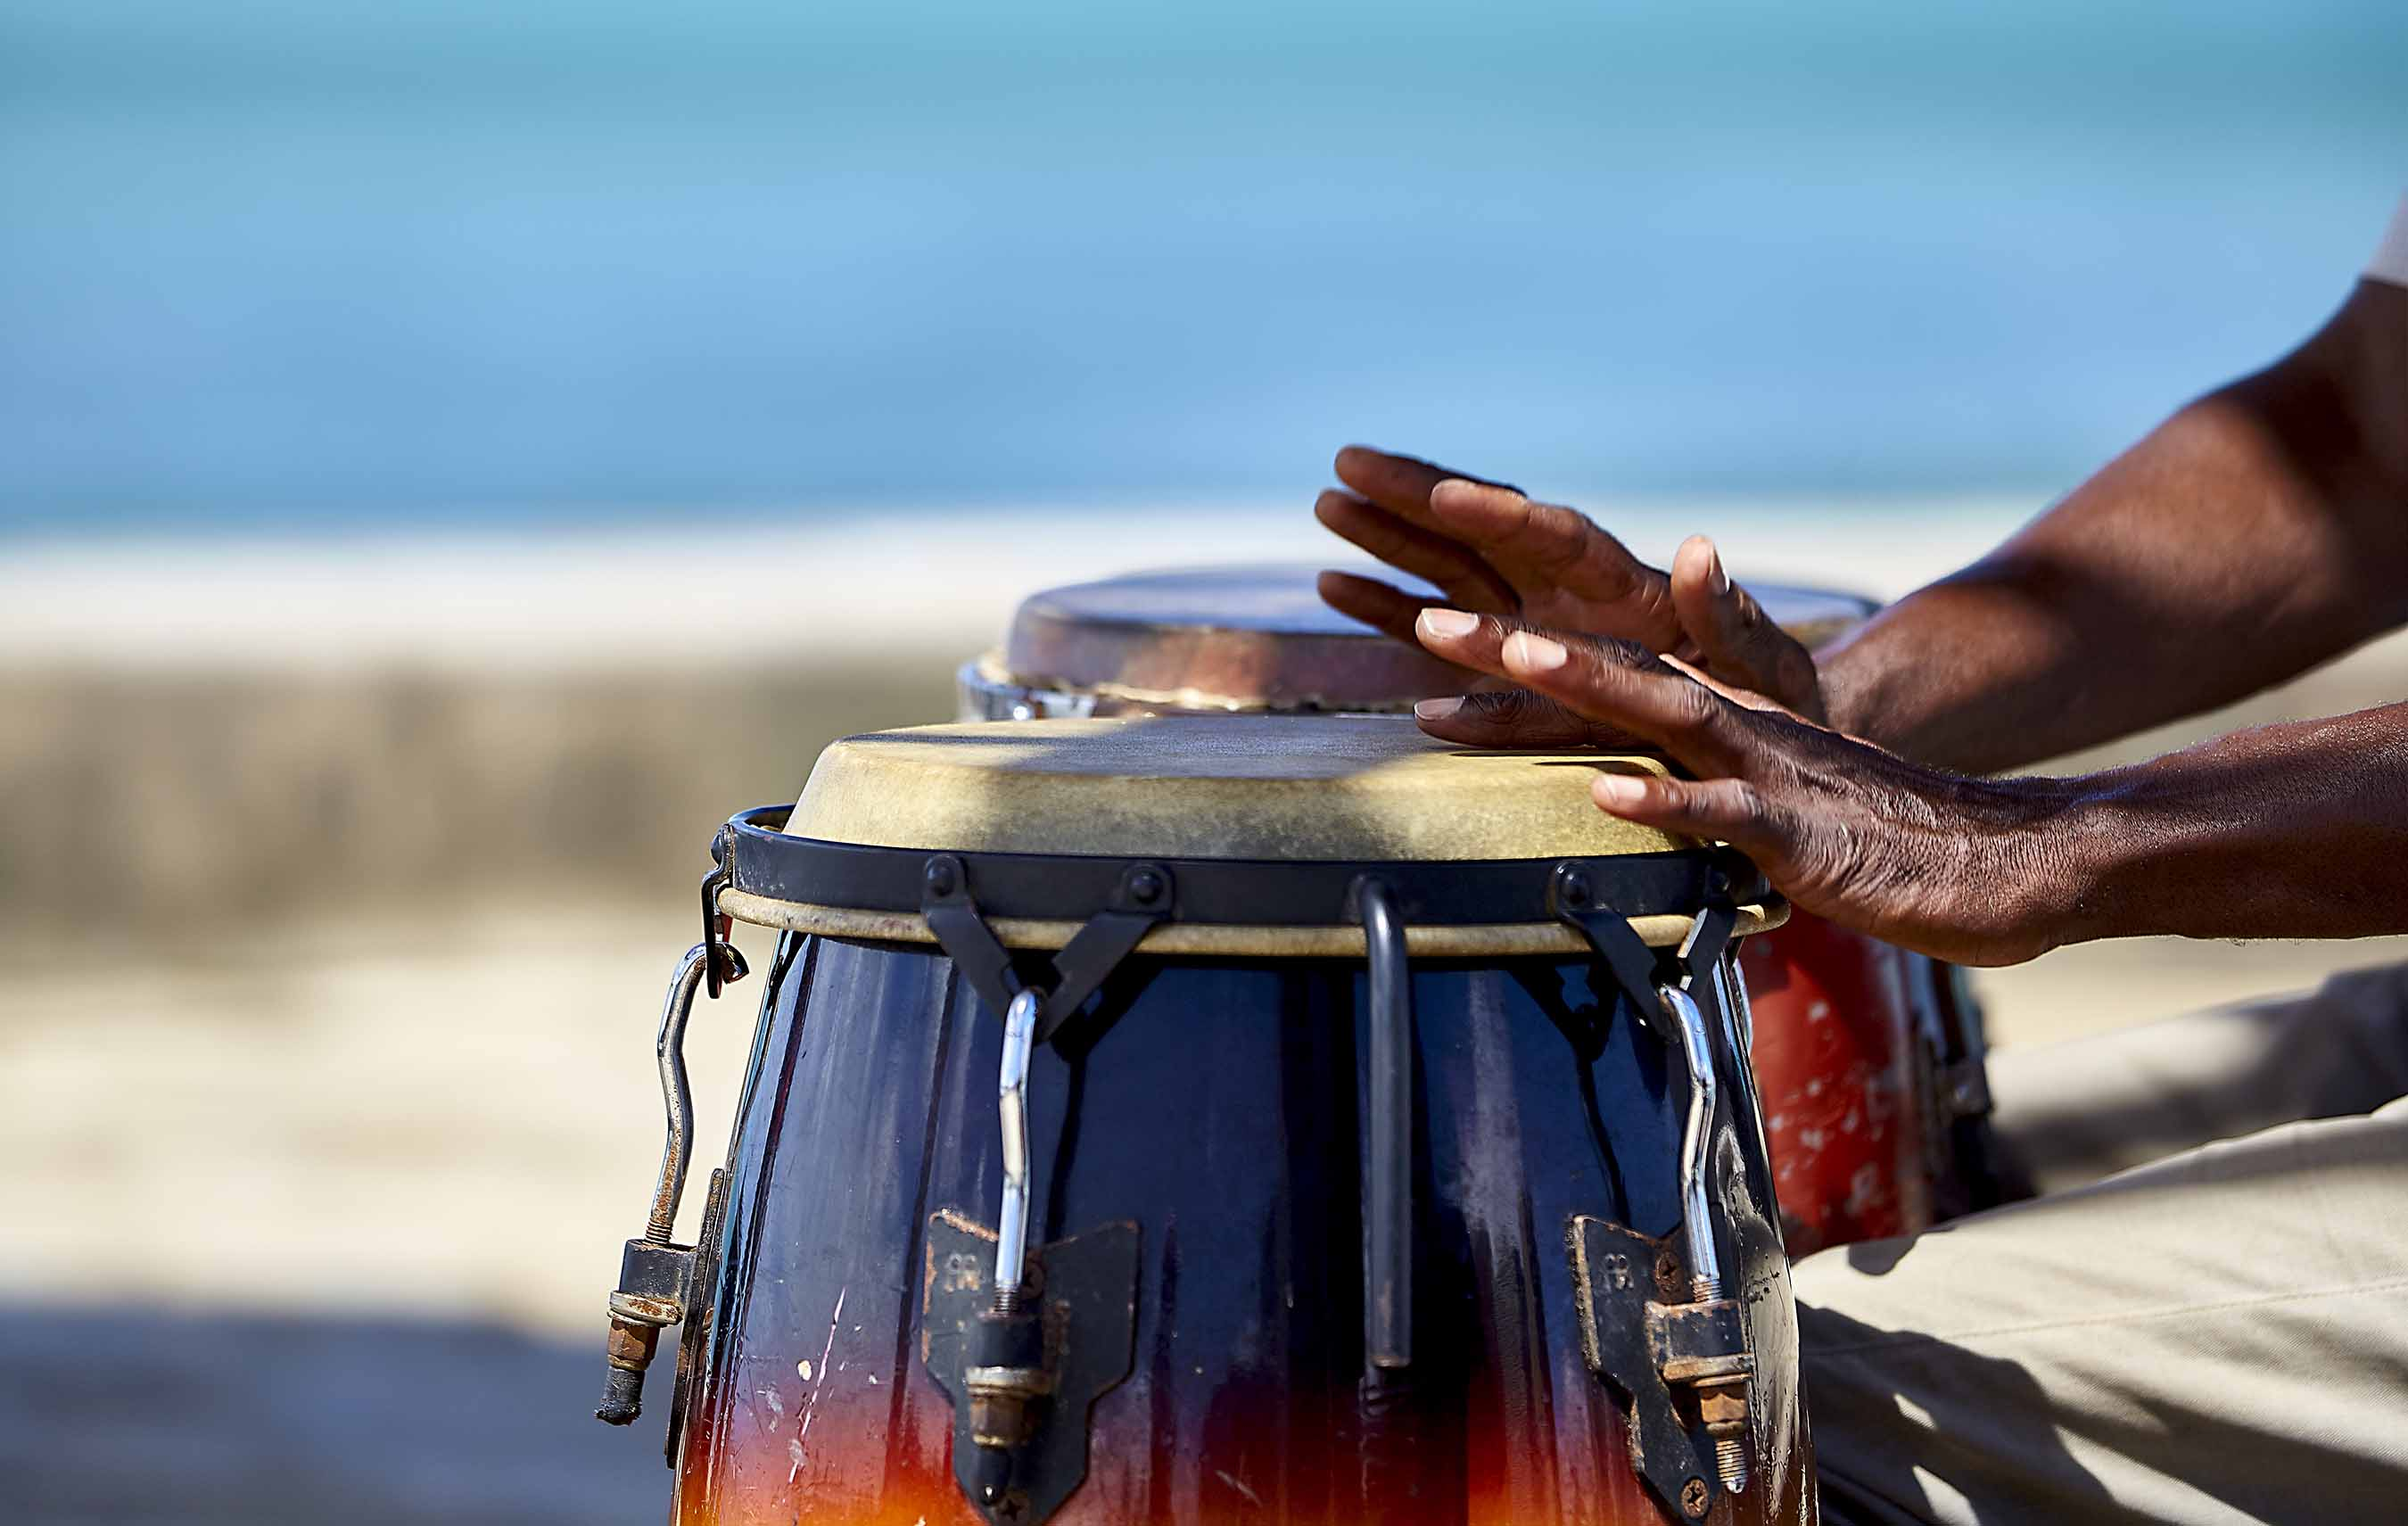 Hands beating on a hand drum